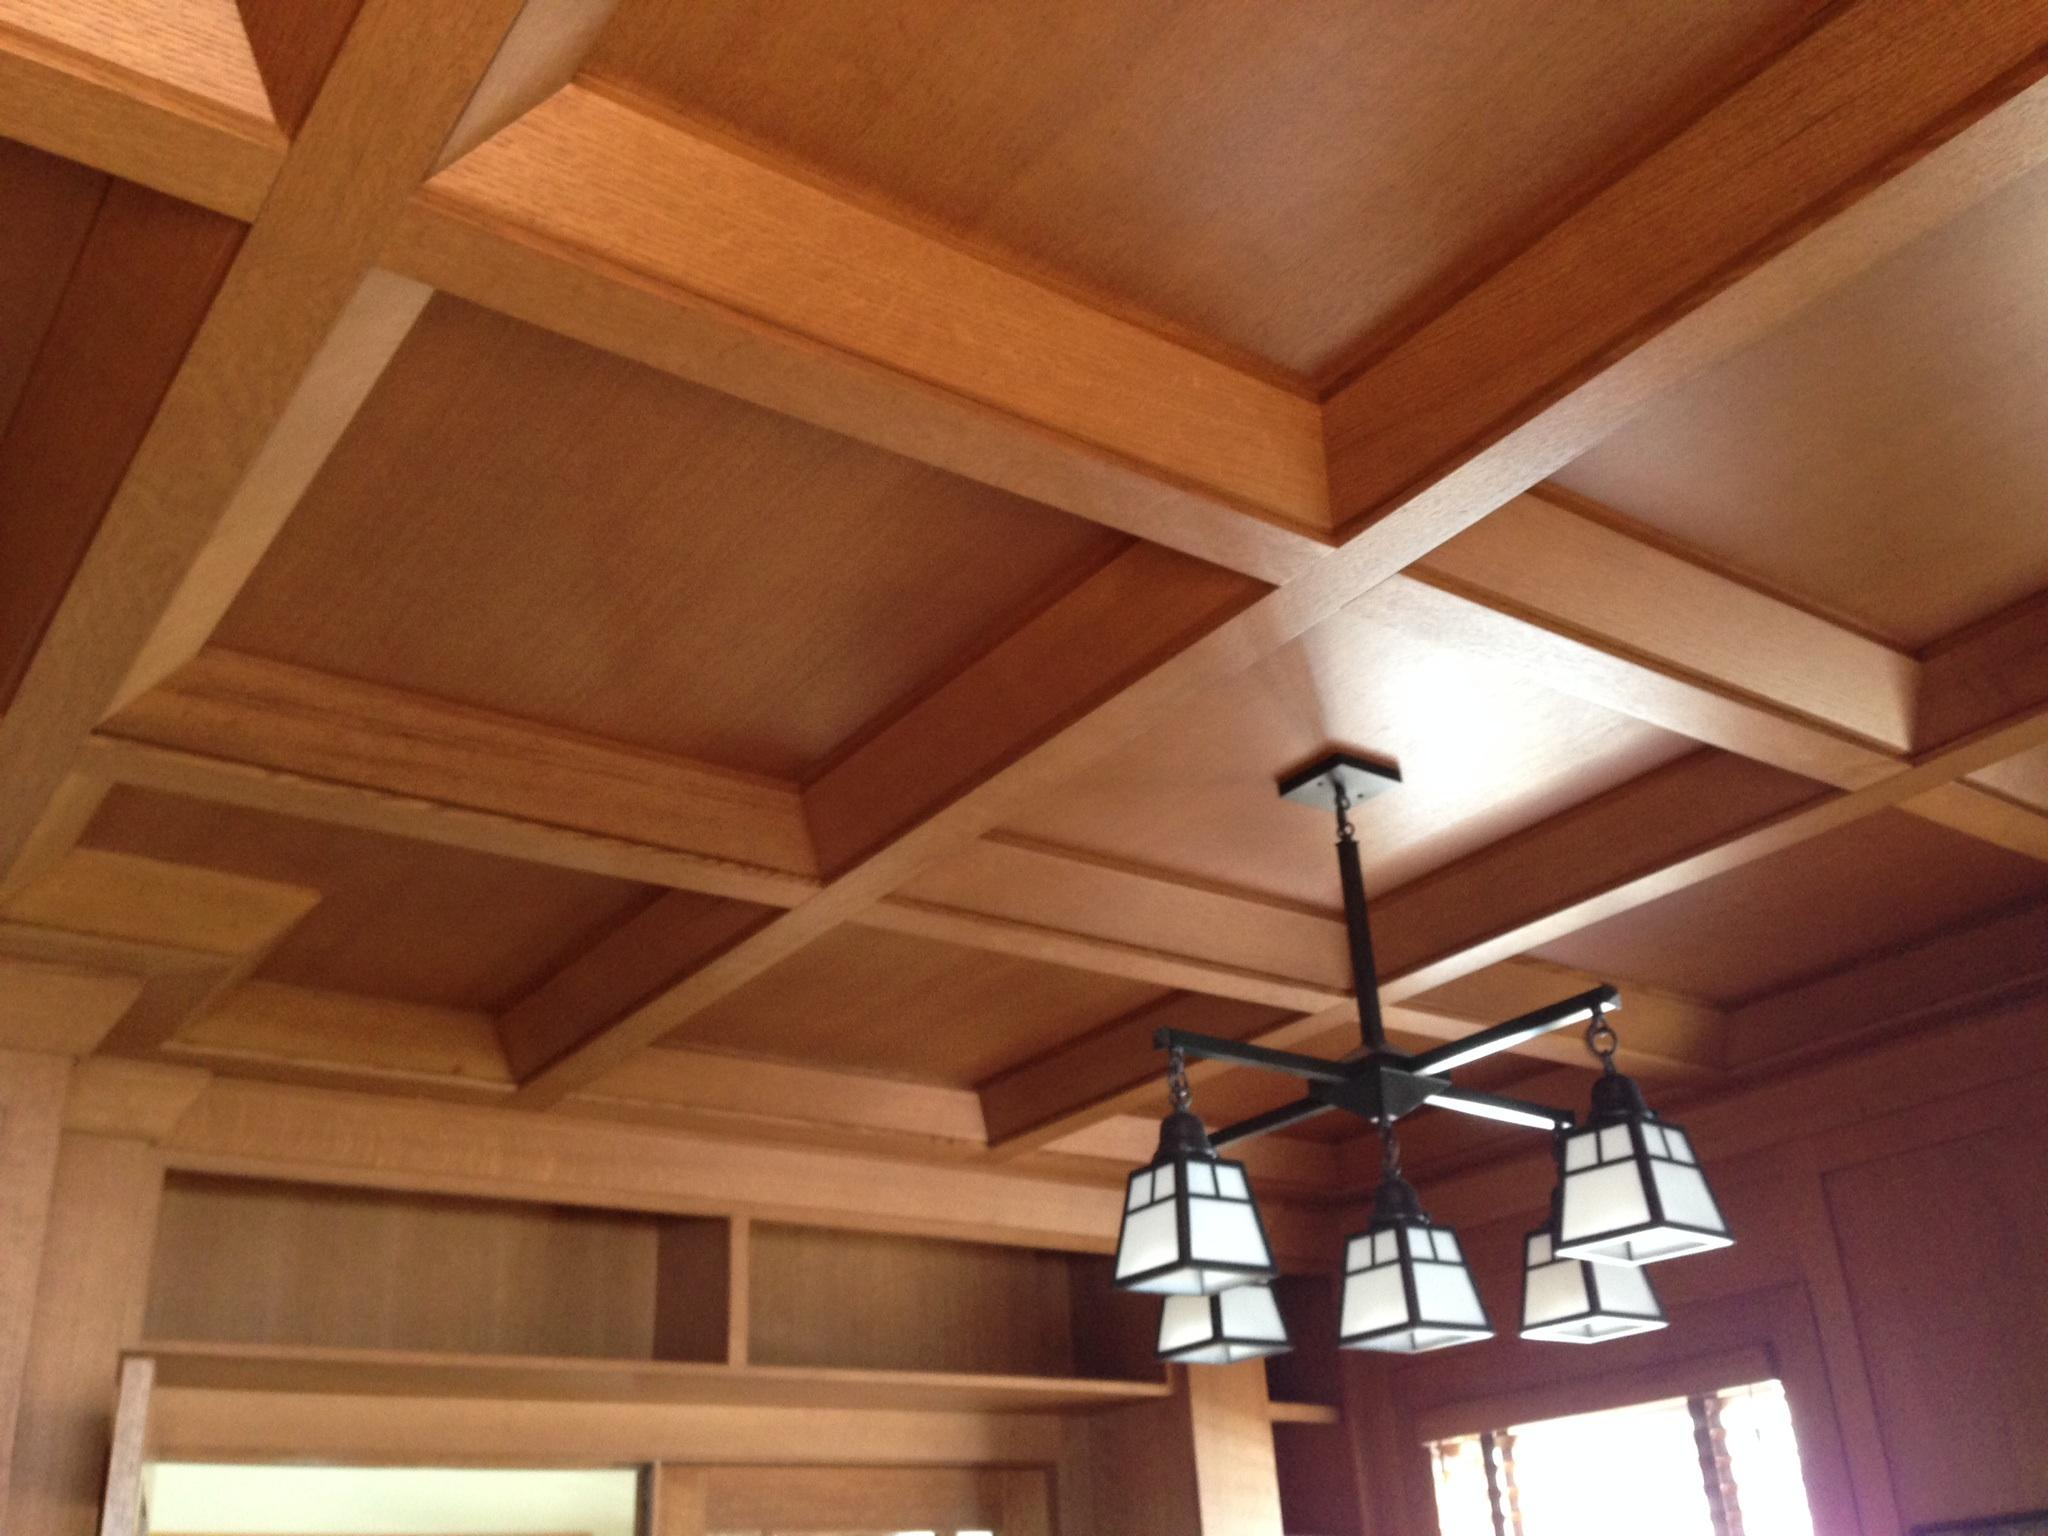 Woodgrid coffered ceilings by midwestern wood products co wood frank lloyd wright ceiling dailygadgetfo Image collections